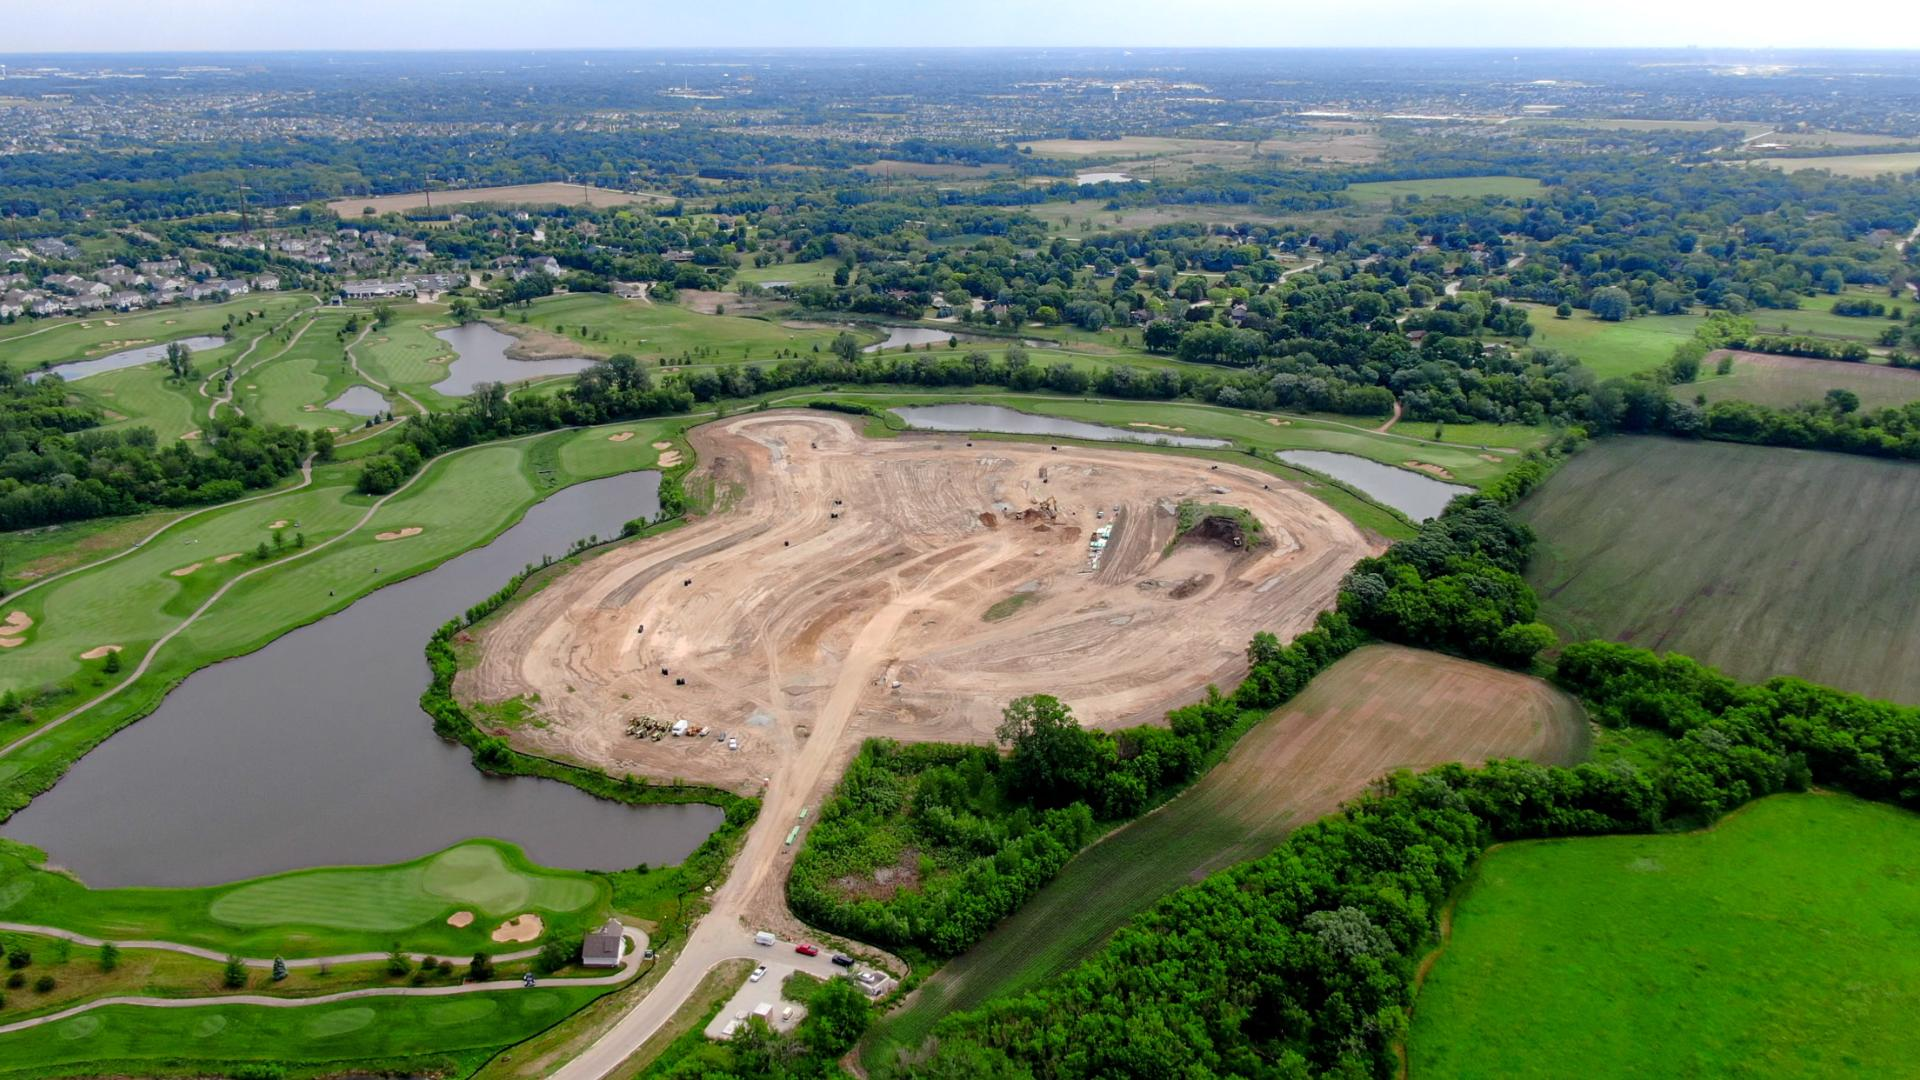 New phase of home sites just released with gorgeous golf course views